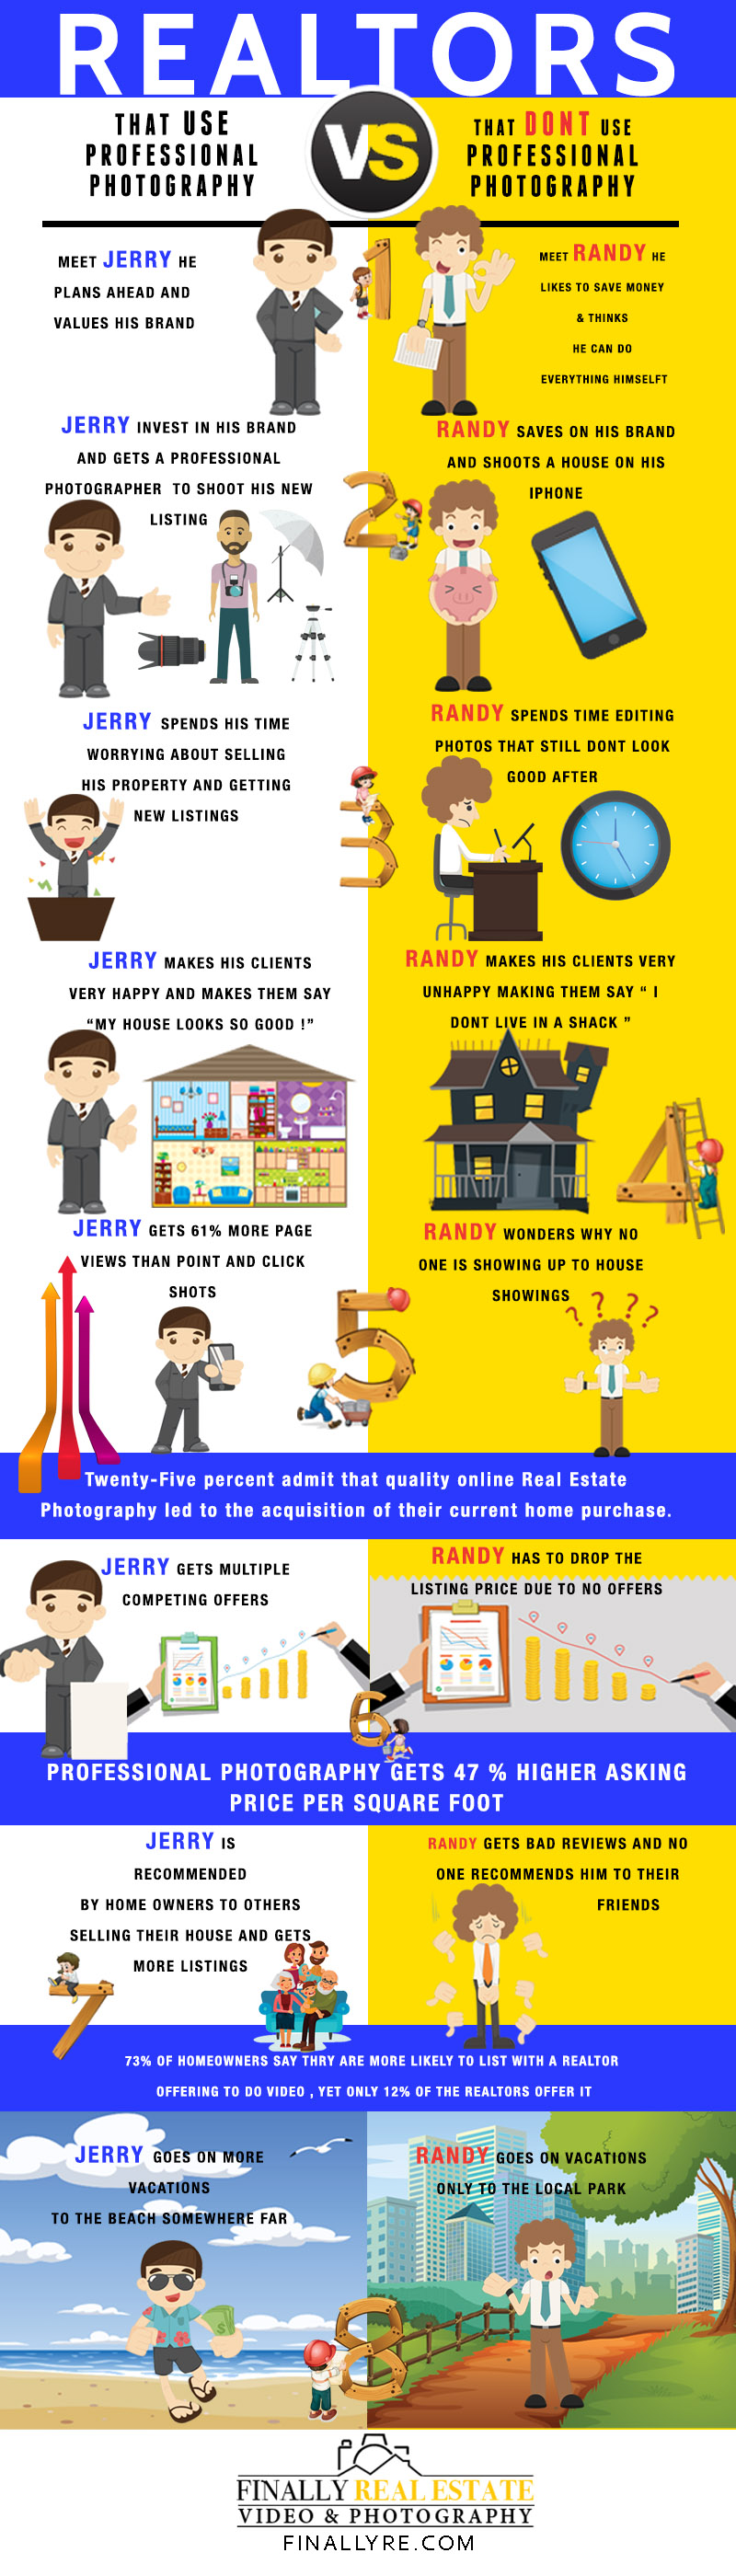 Real Estate Photography infographic